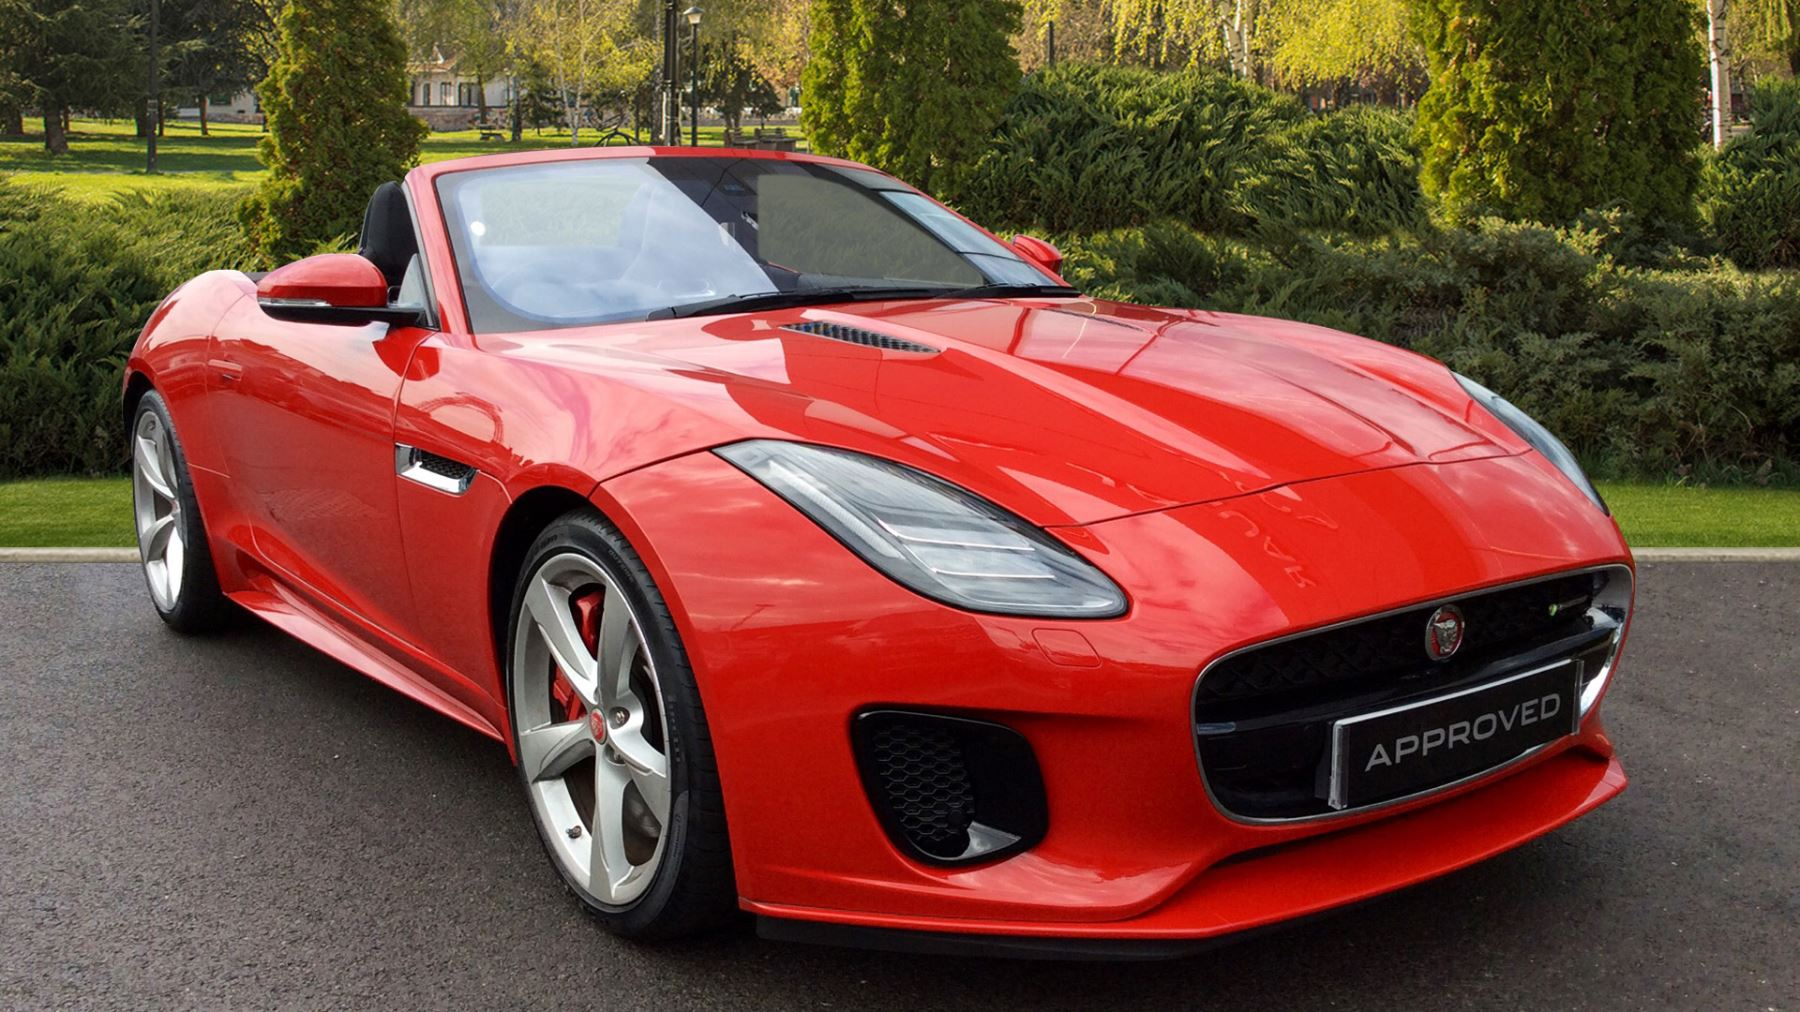 Jaguar F-TYPE 3.0 [380] Supercharged V6 R-Dynamic 2dr Automatic Convertible (2018)